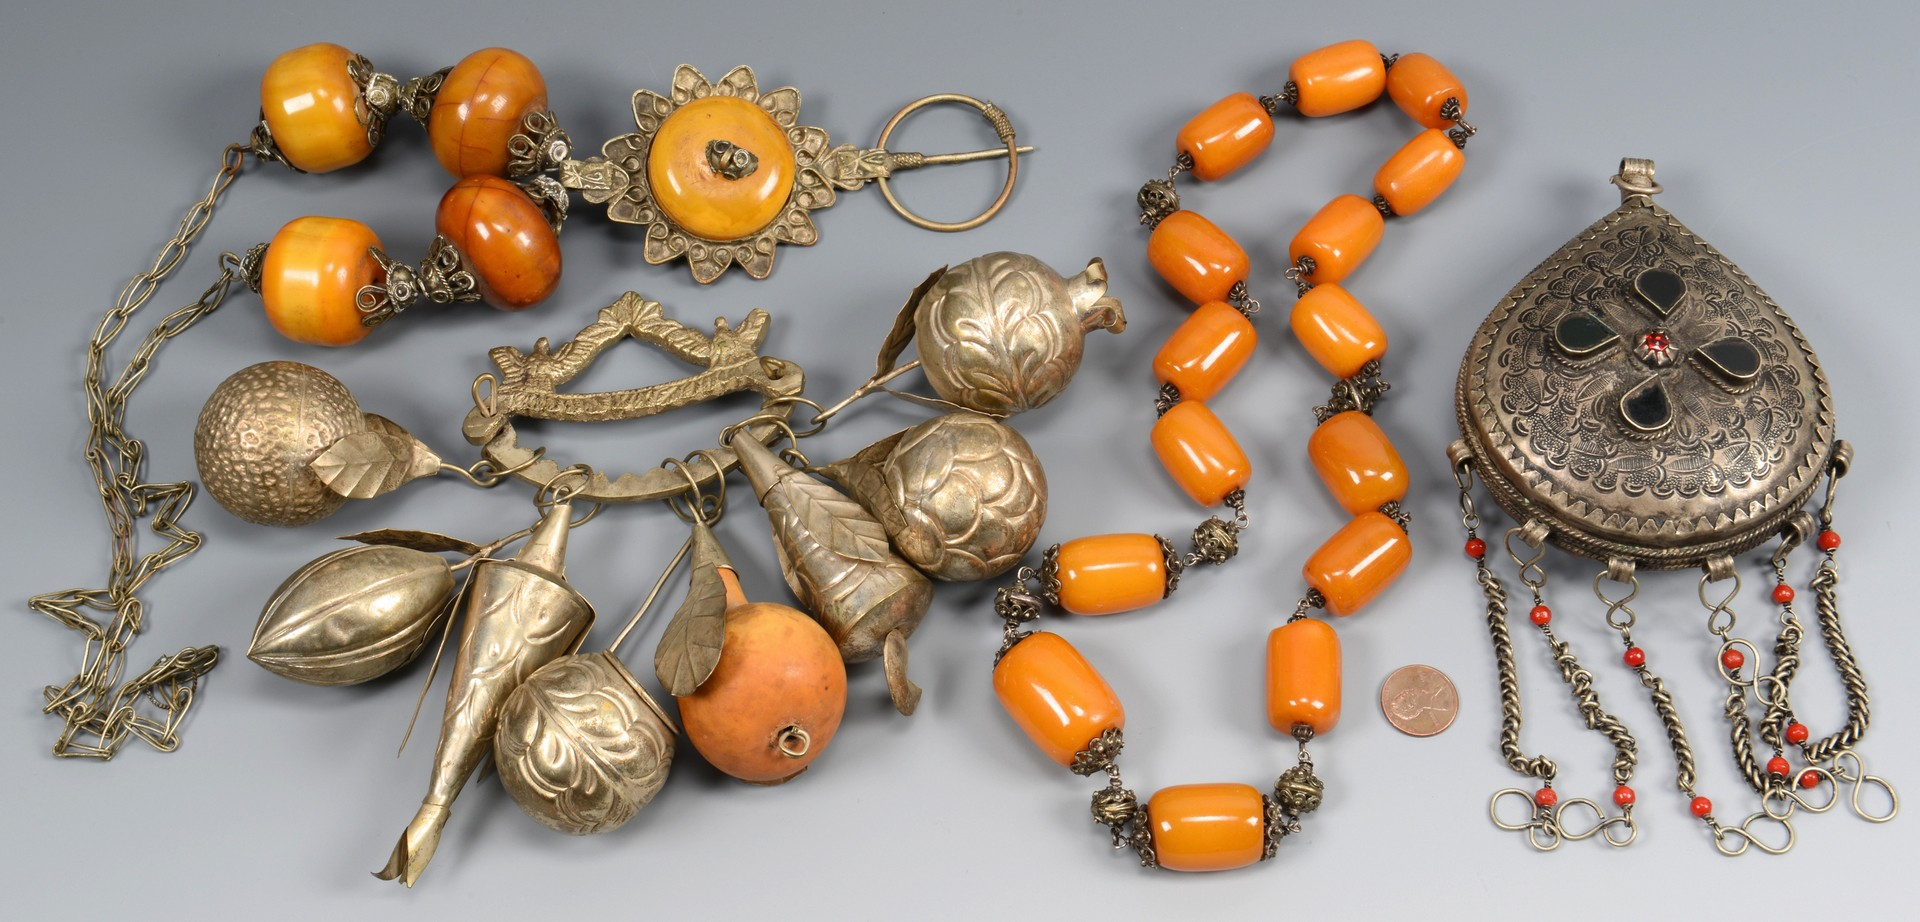 Lot 3832432: 4 Far East Jewelry and Accessory Items